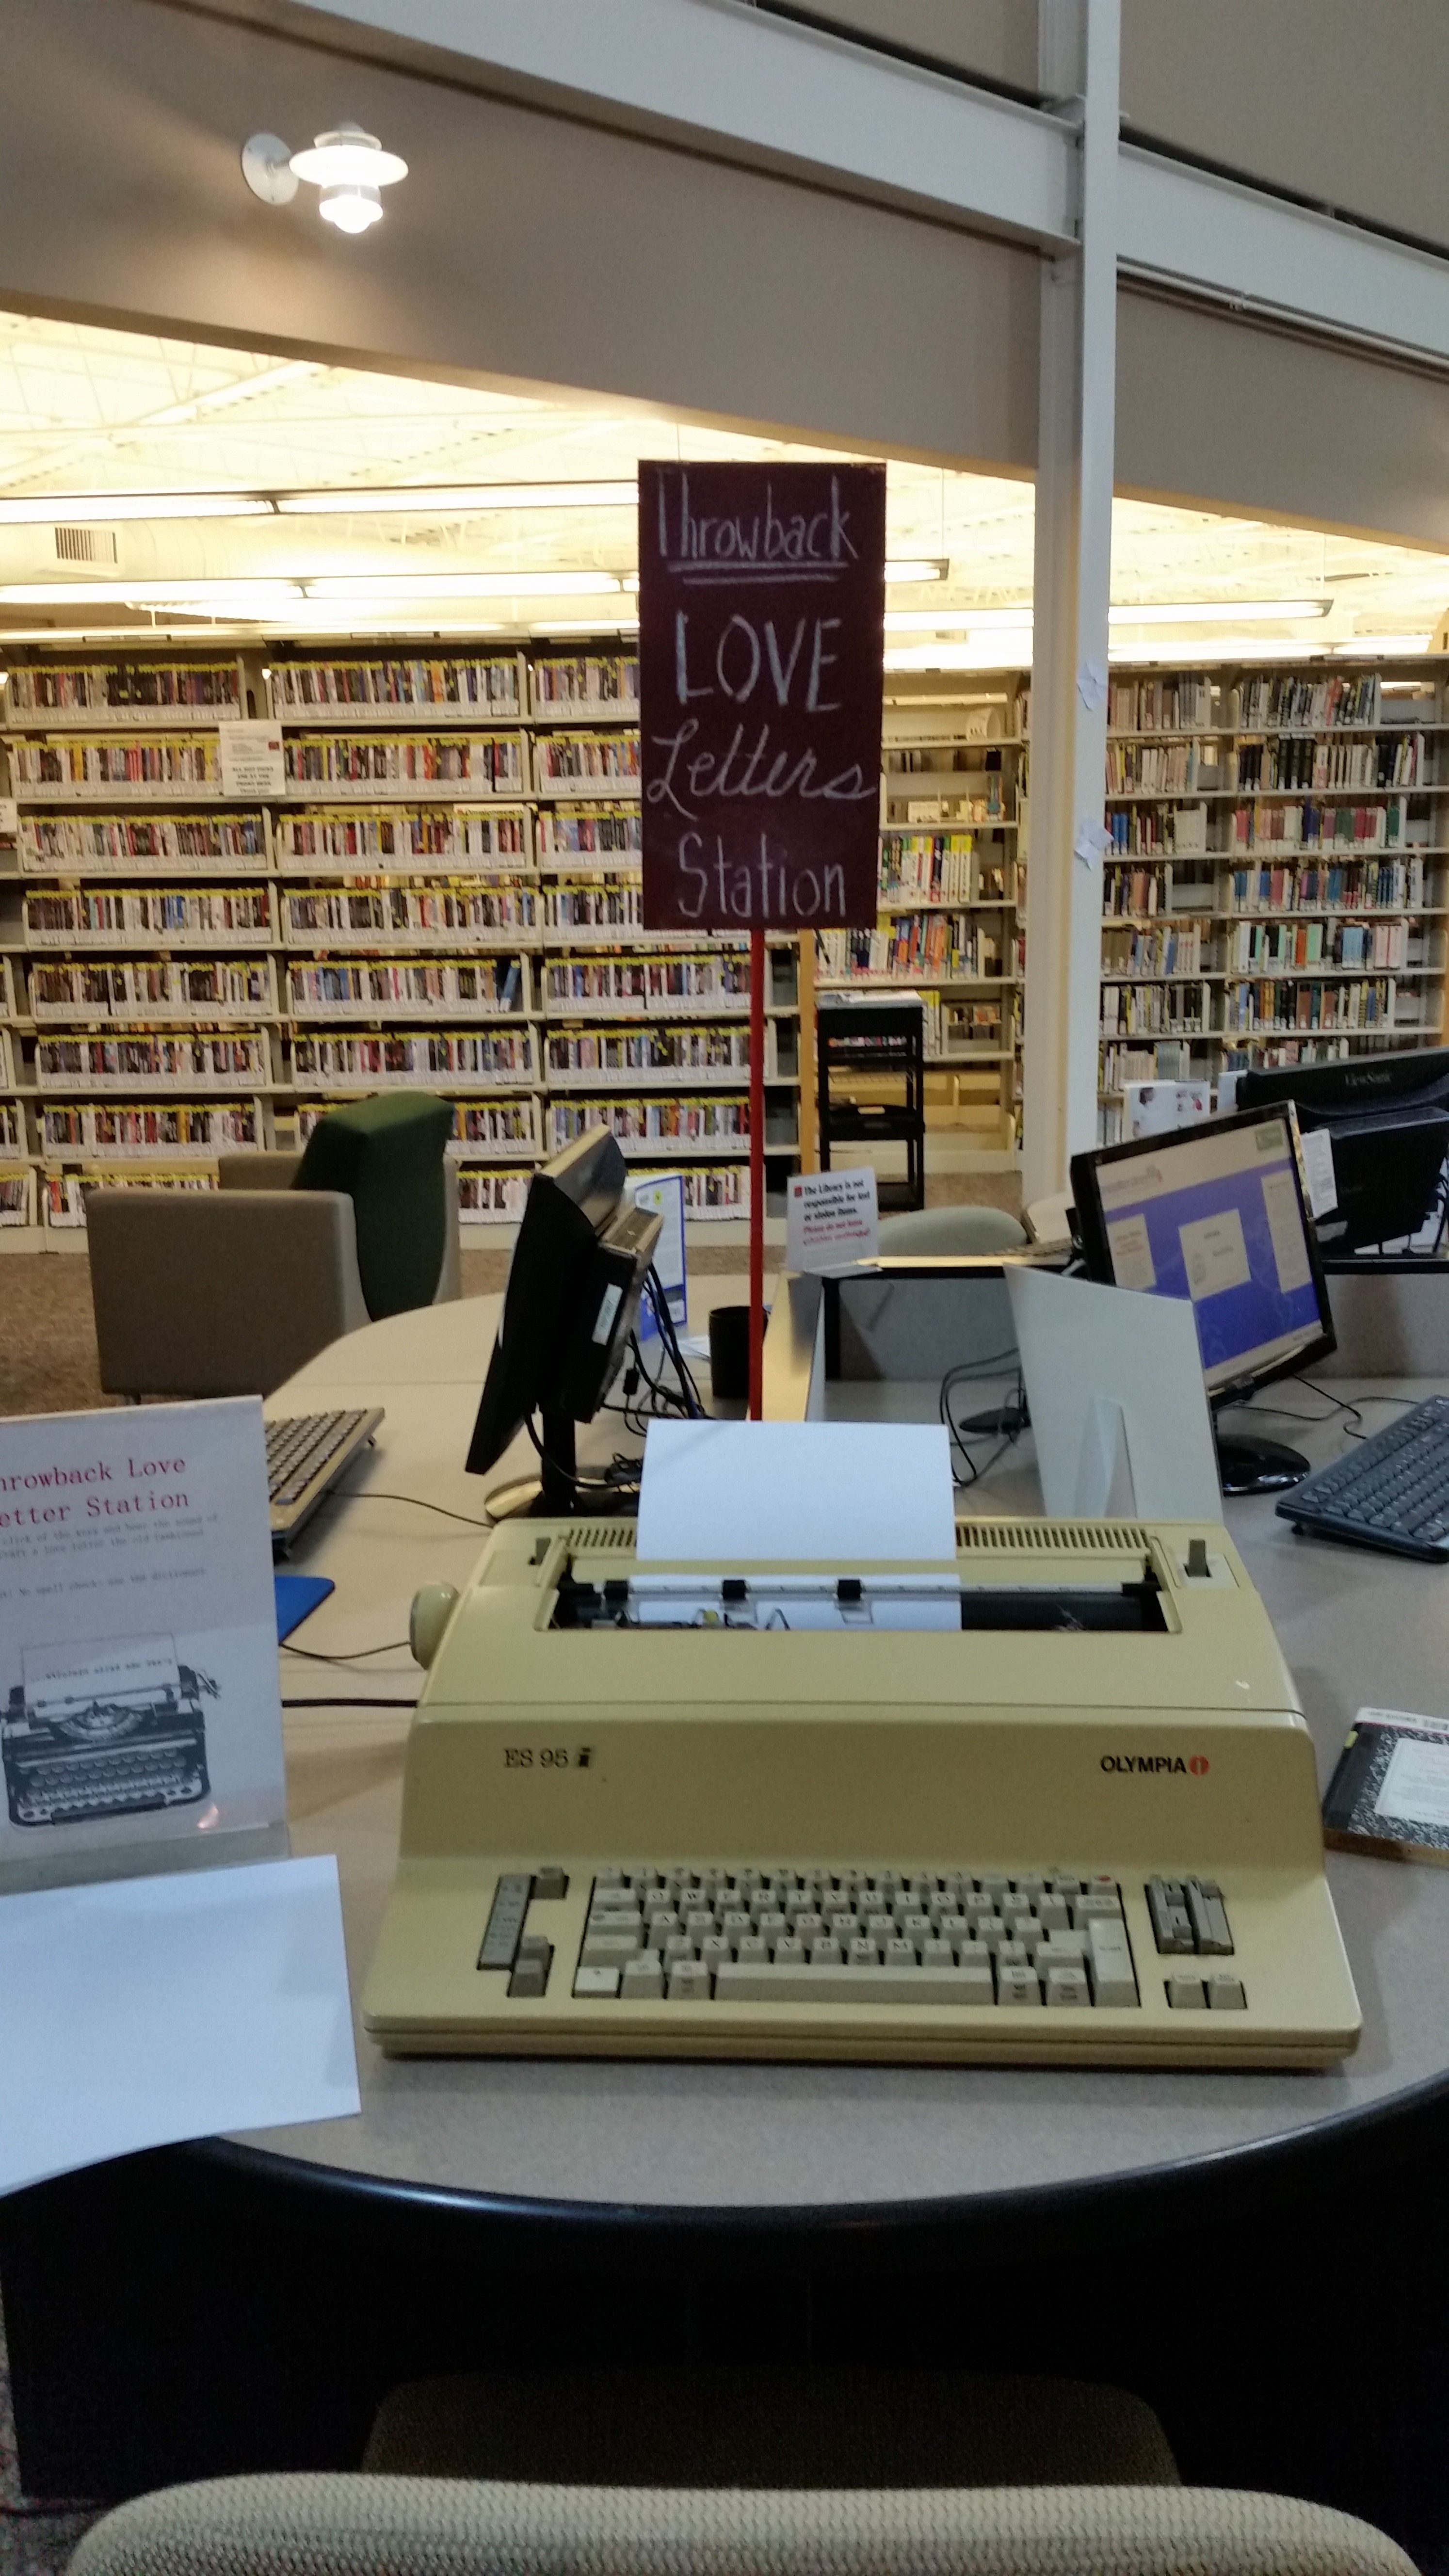 Throwback Love Letter Station Digging Out An Old Typewriter One Can Type No Spell Check A Passive Programming Library Library Book Displays Library Events